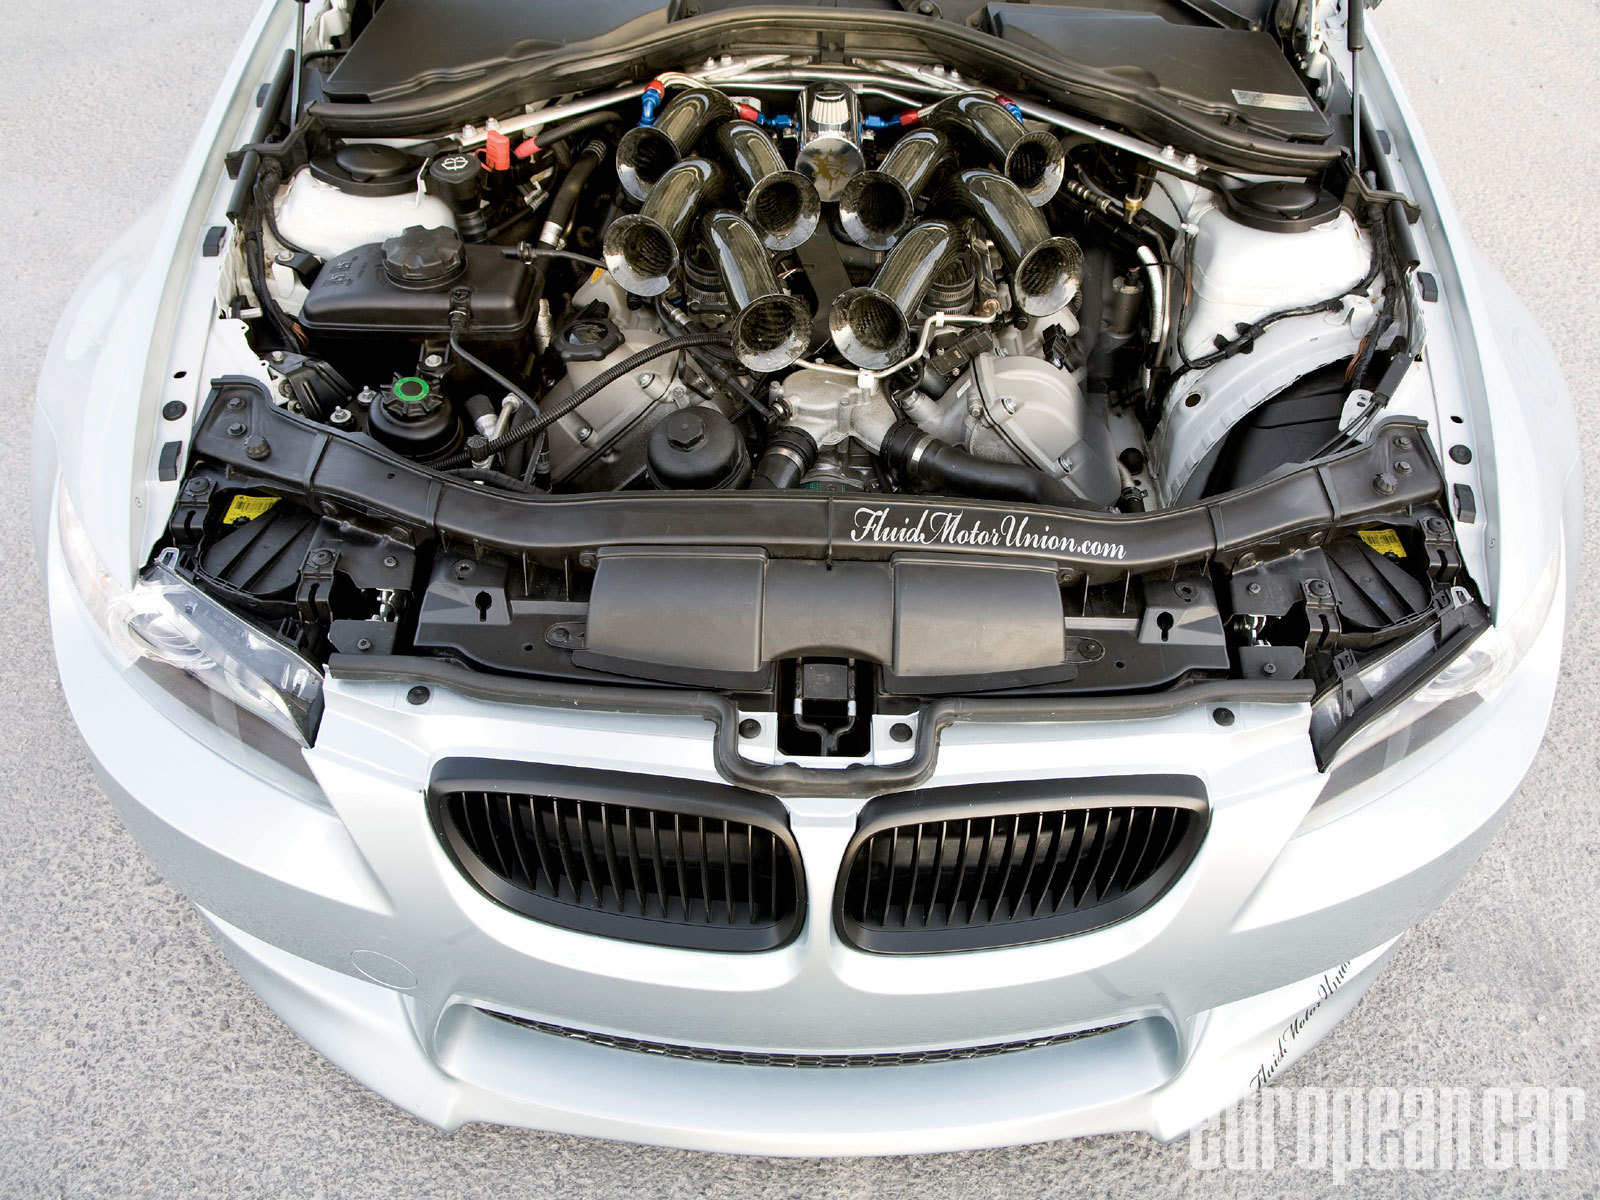 BMW cars Engines HD Wallpaper